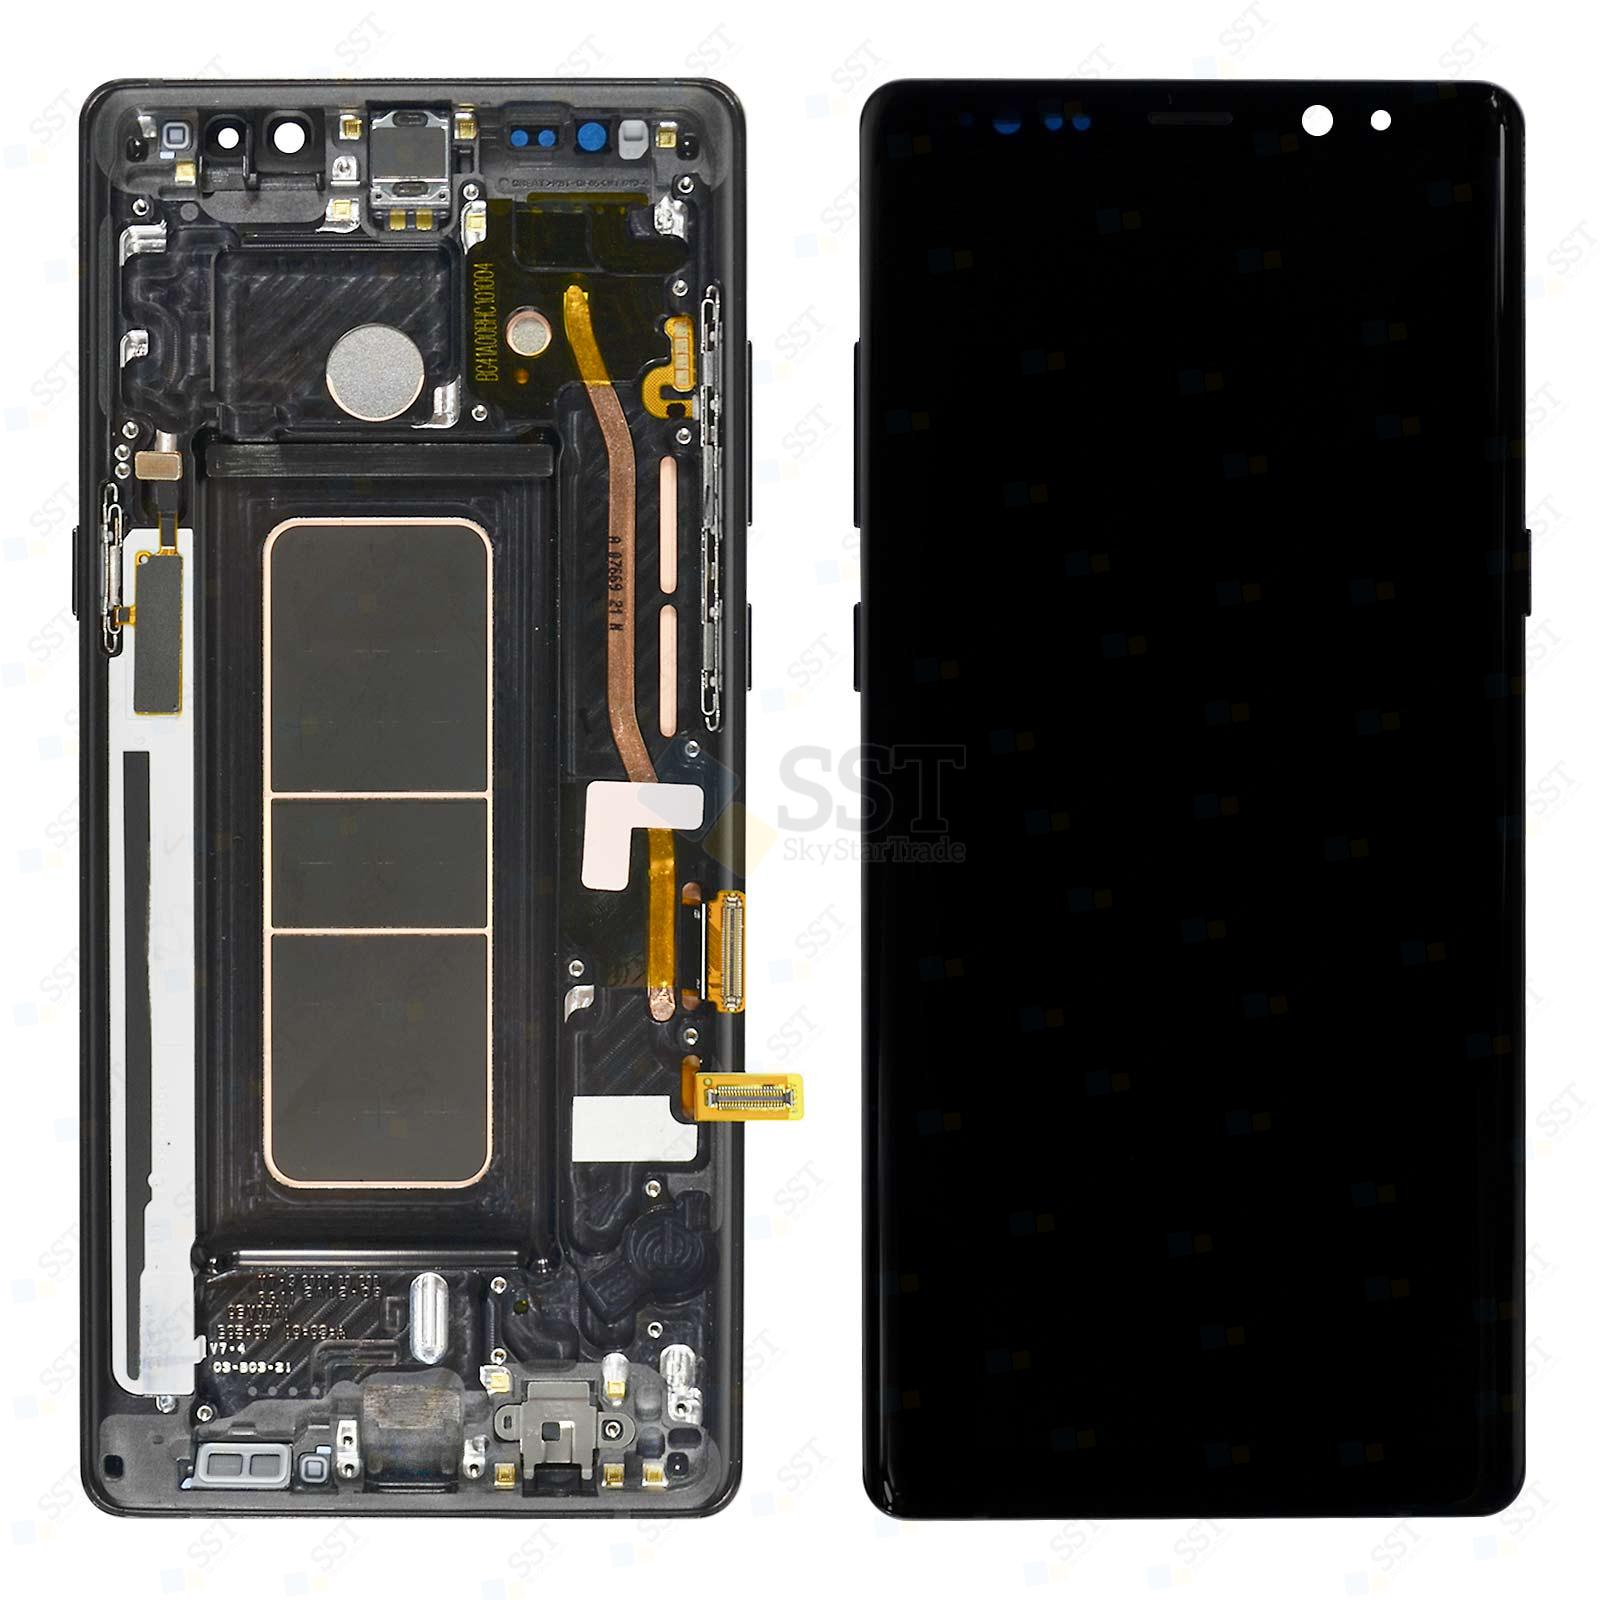 Samsung Galaxy Note 8 N9500 N9508 N950D N950F N950FD N950J N950N N950NKPC N950U N950U1 N950W LCD Screen Digitizer with Bezel Frame, Black